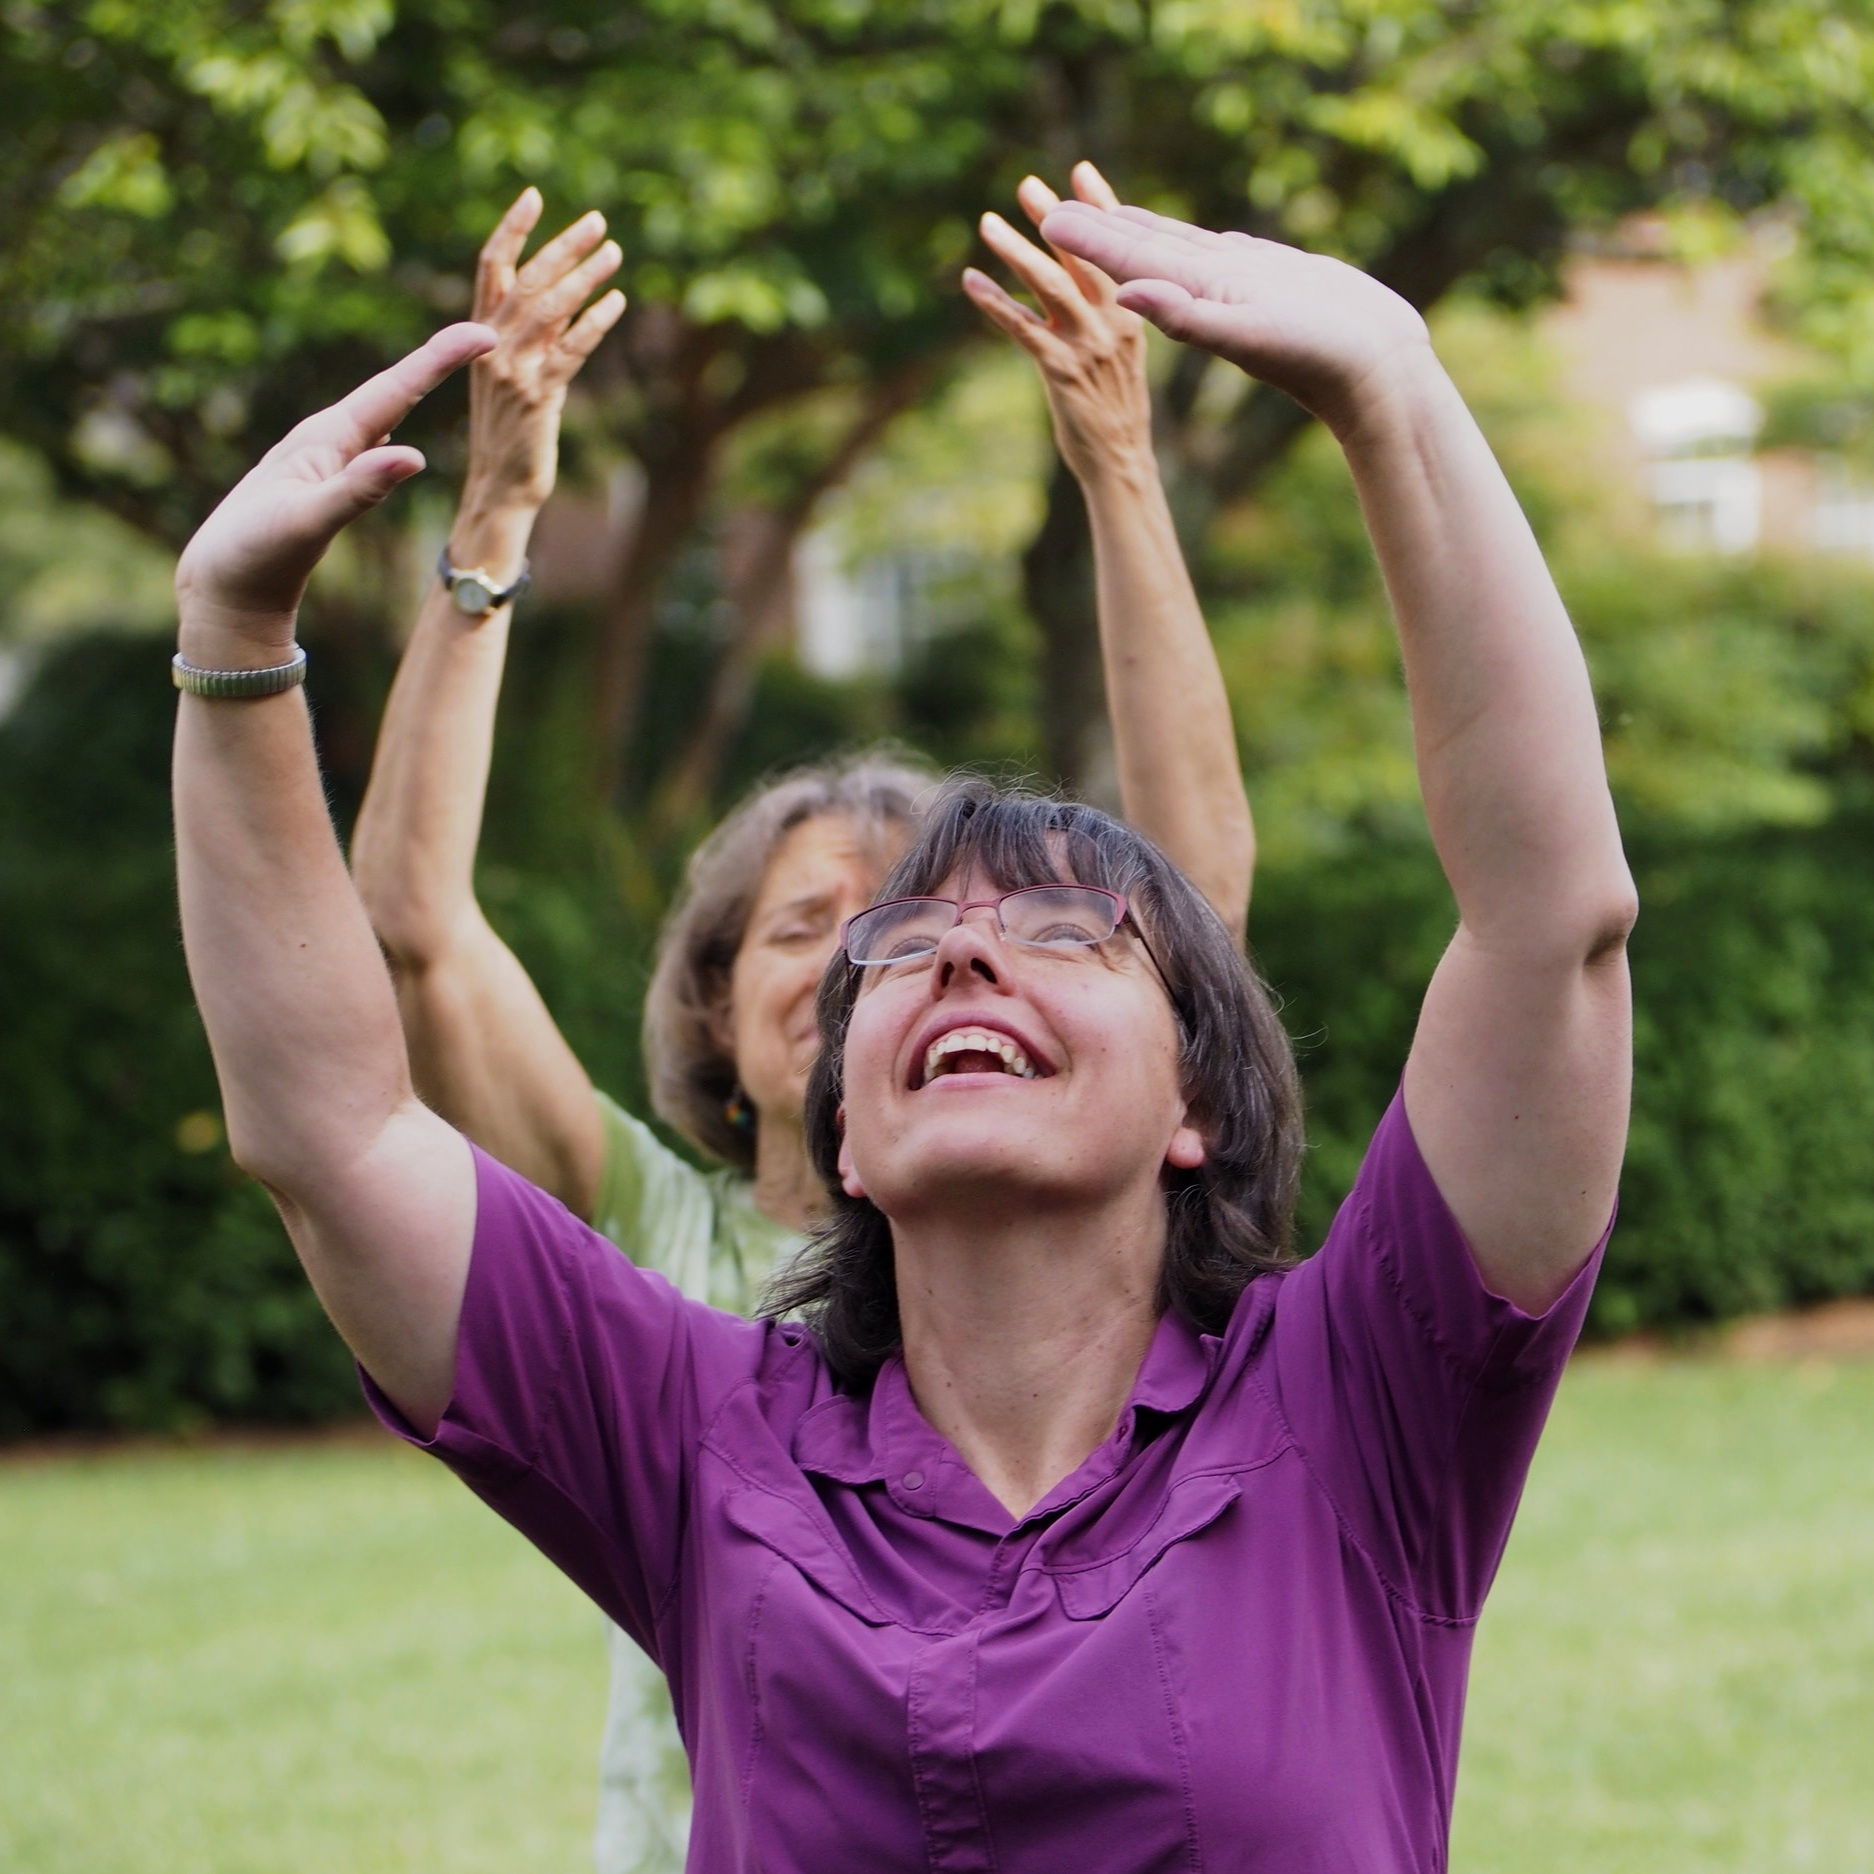 Two people doing Qigong poses with hands over their heads.